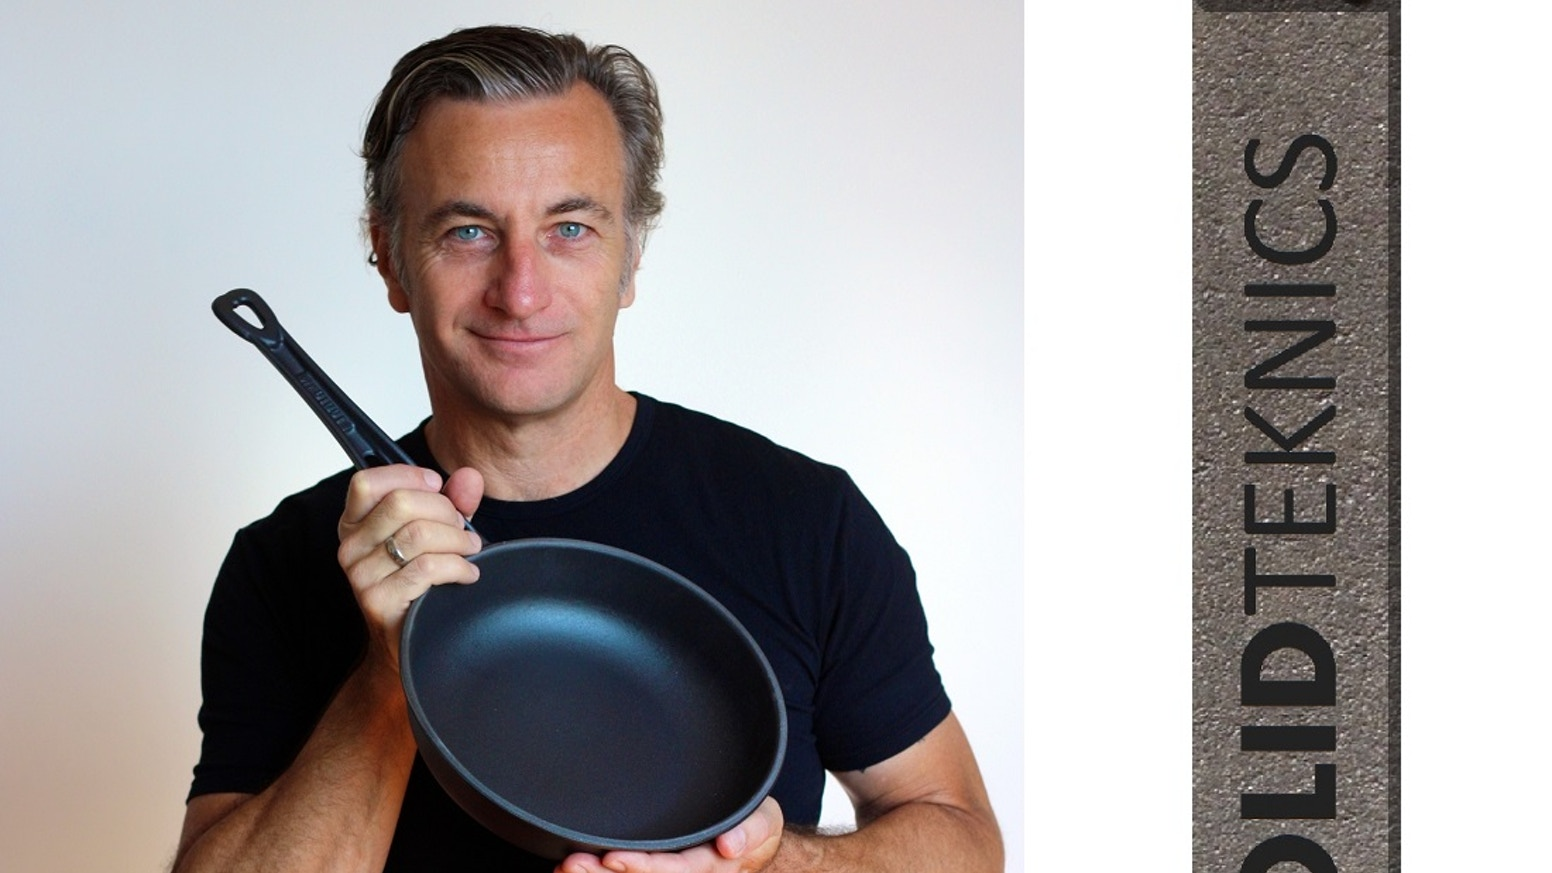 SOLIDTEKNICS Fonte™ pans by food-loving mechanical engineer MJ Henry. Australian-made French style sauteuse. First comfy iron handle <3